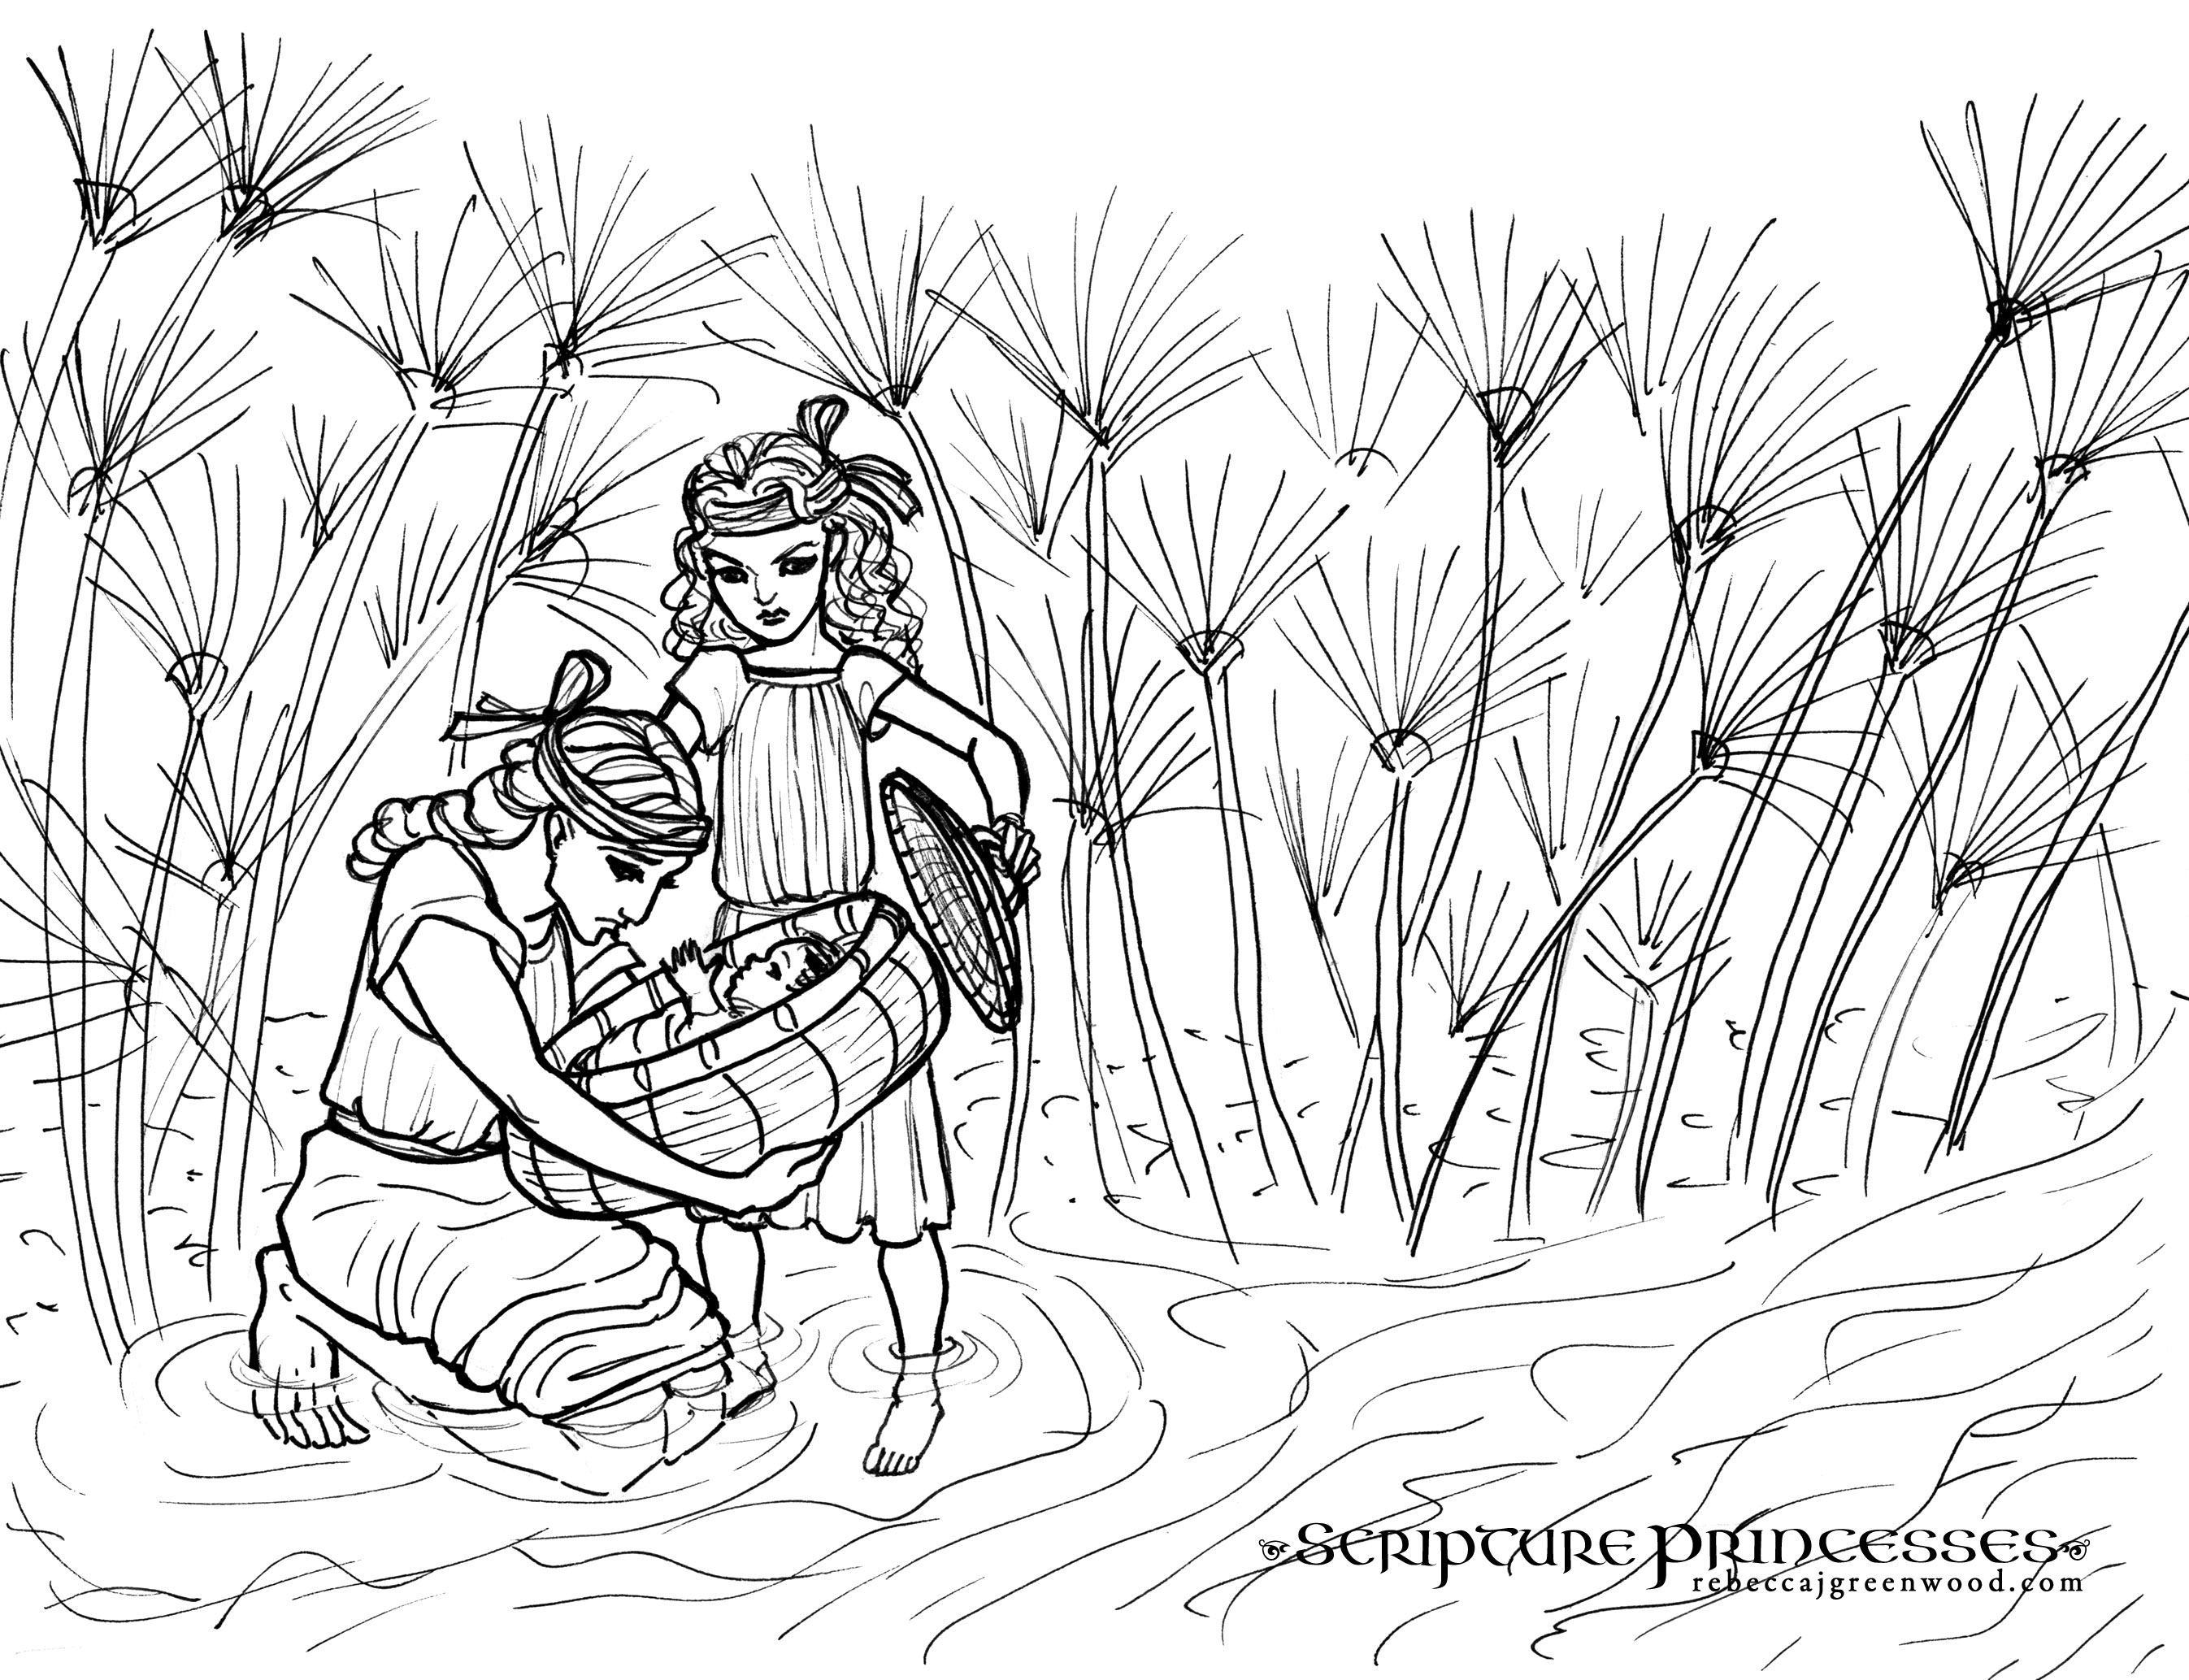 Free coloring page miriam rebecca j greenwood for Moses coloring pages